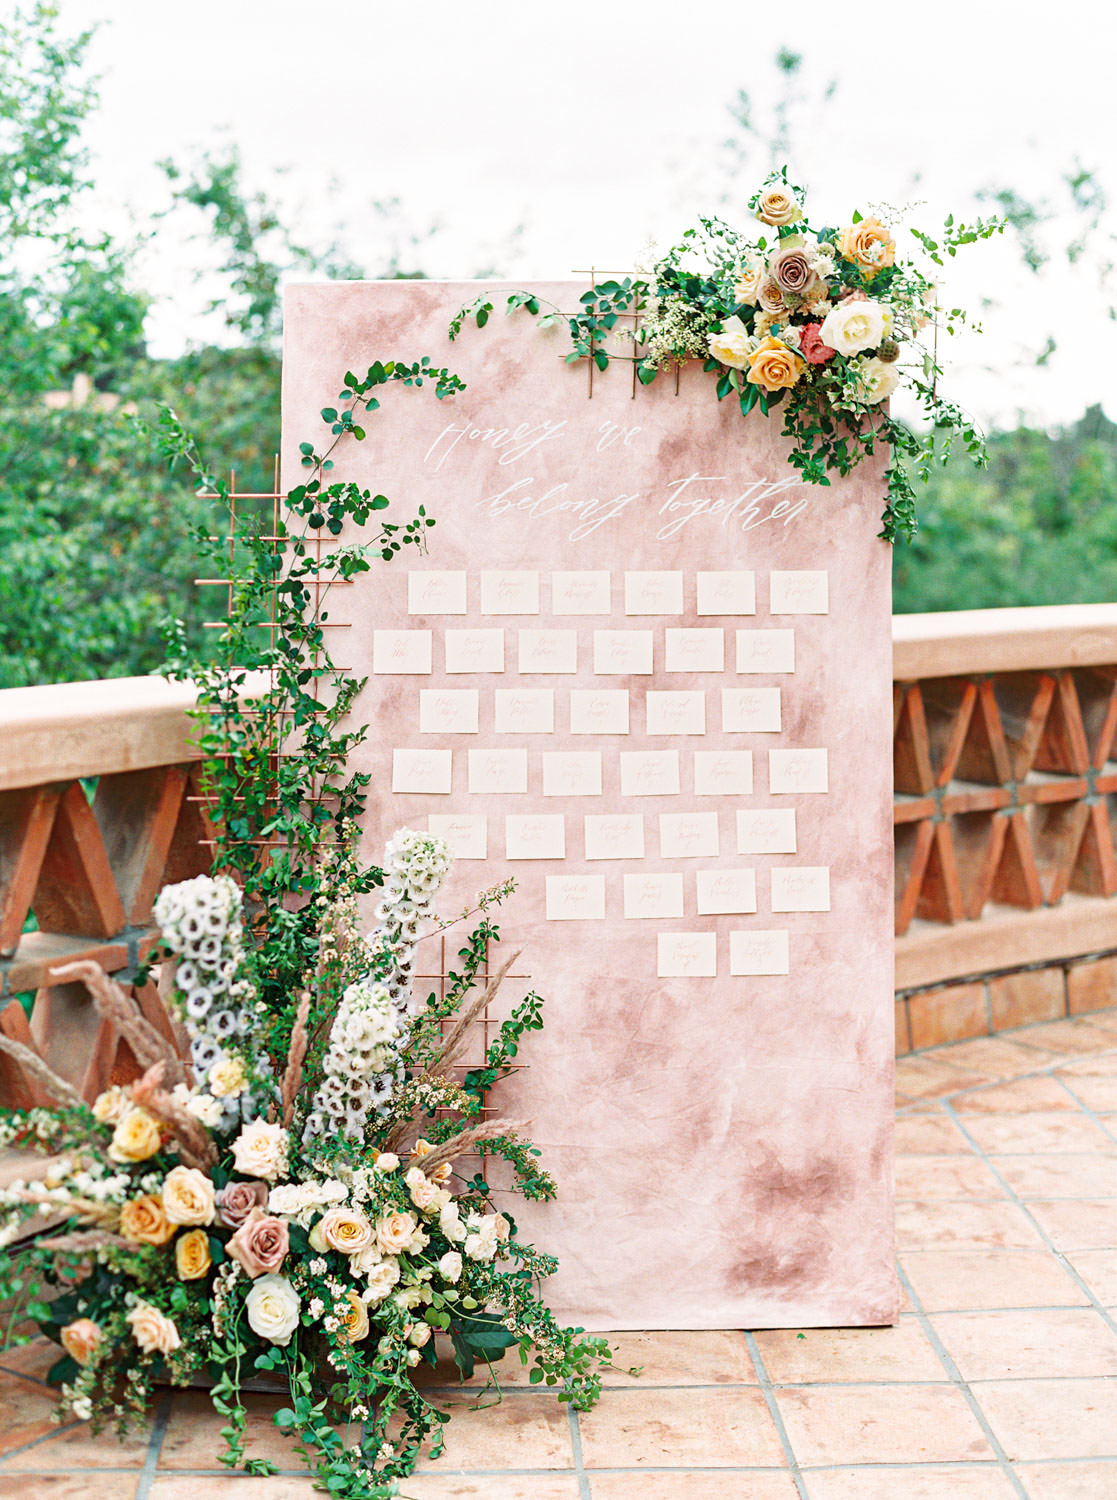 Mauve blush painterly escort card display with large floral installations in green, mauve, ivory, yellow, and gold flowers. Ivory place cards with mauve calligraphy. Honey and Beekeeper Inspired Wedding on sunrise terrace patio at Rancho Valencia on film by Cavin Elizabeth Photography